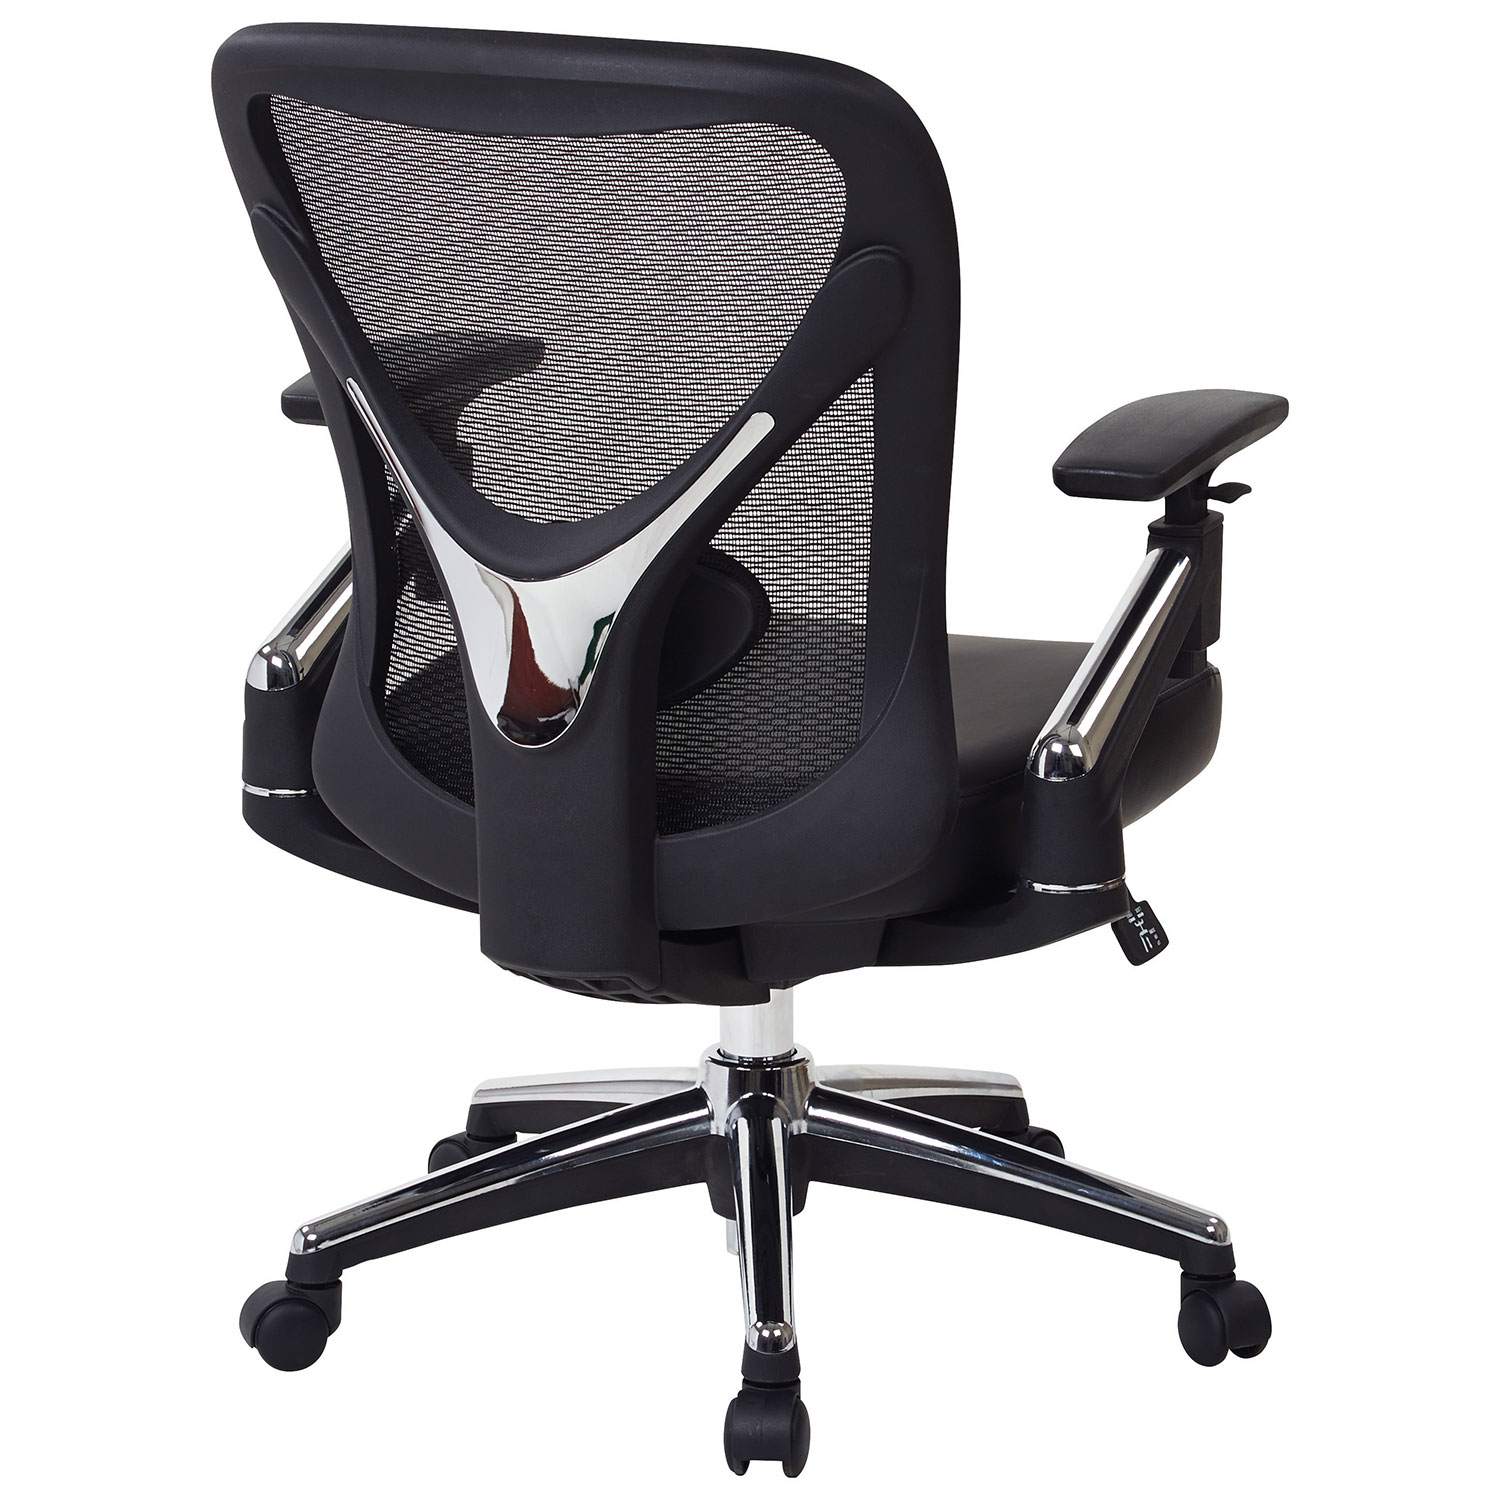 Office Star Professional Air Grid Deluxe Task Chair pro-line ii leather manager & executive chair - black : office